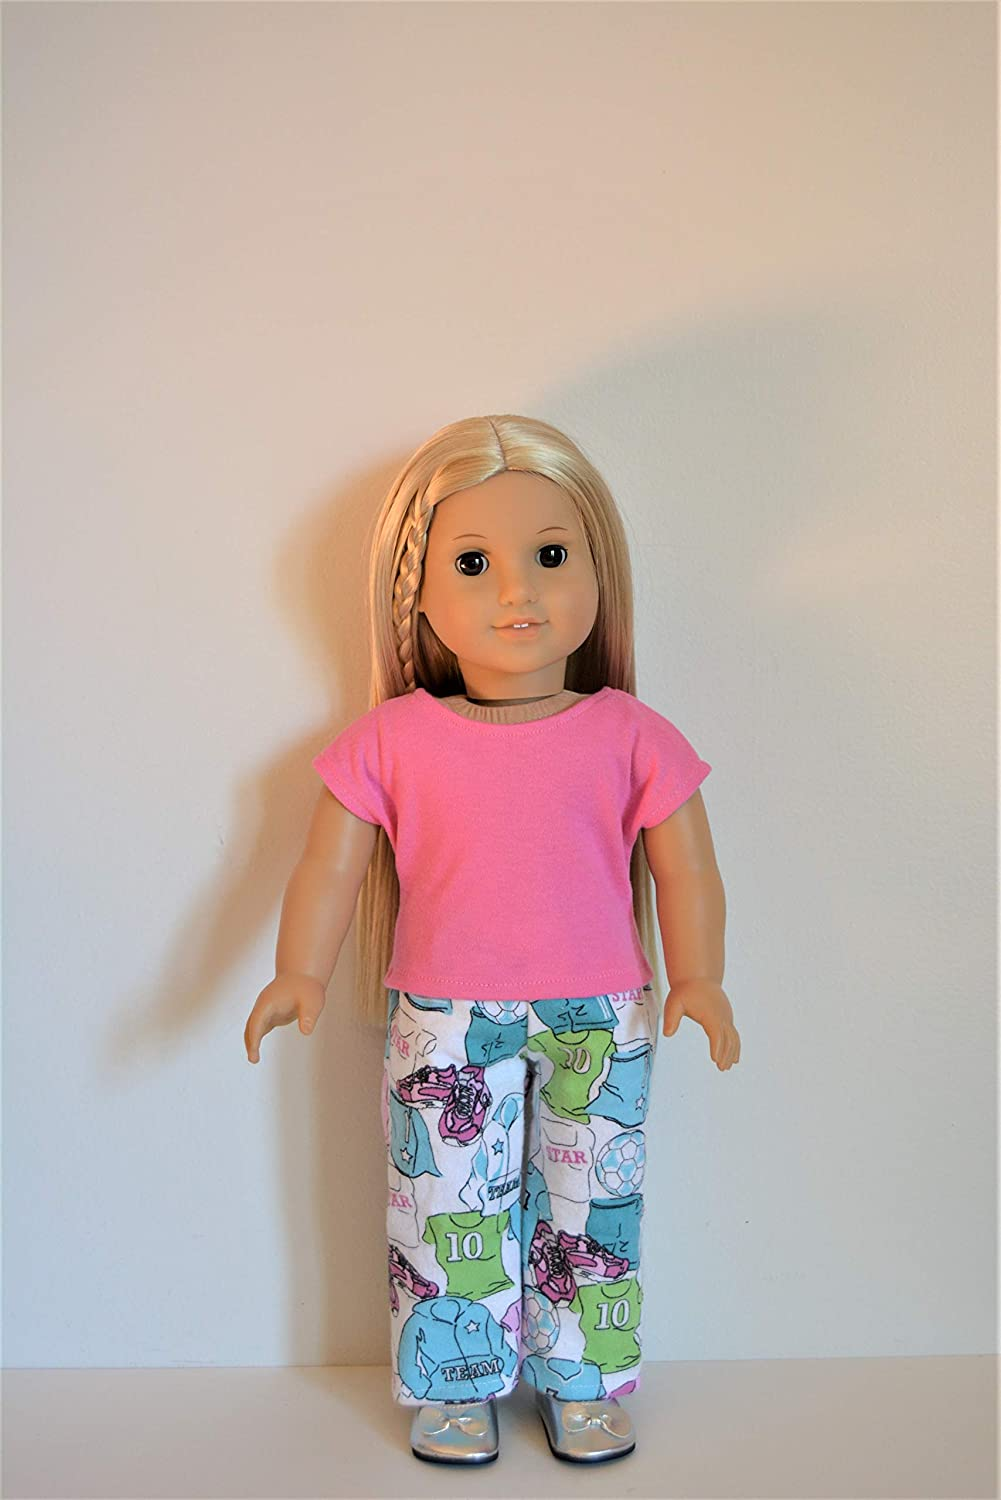 Handmade Doll Clothes Pajamas Top and Pants fit 18 American Girl or Boy Dolls Christmas F